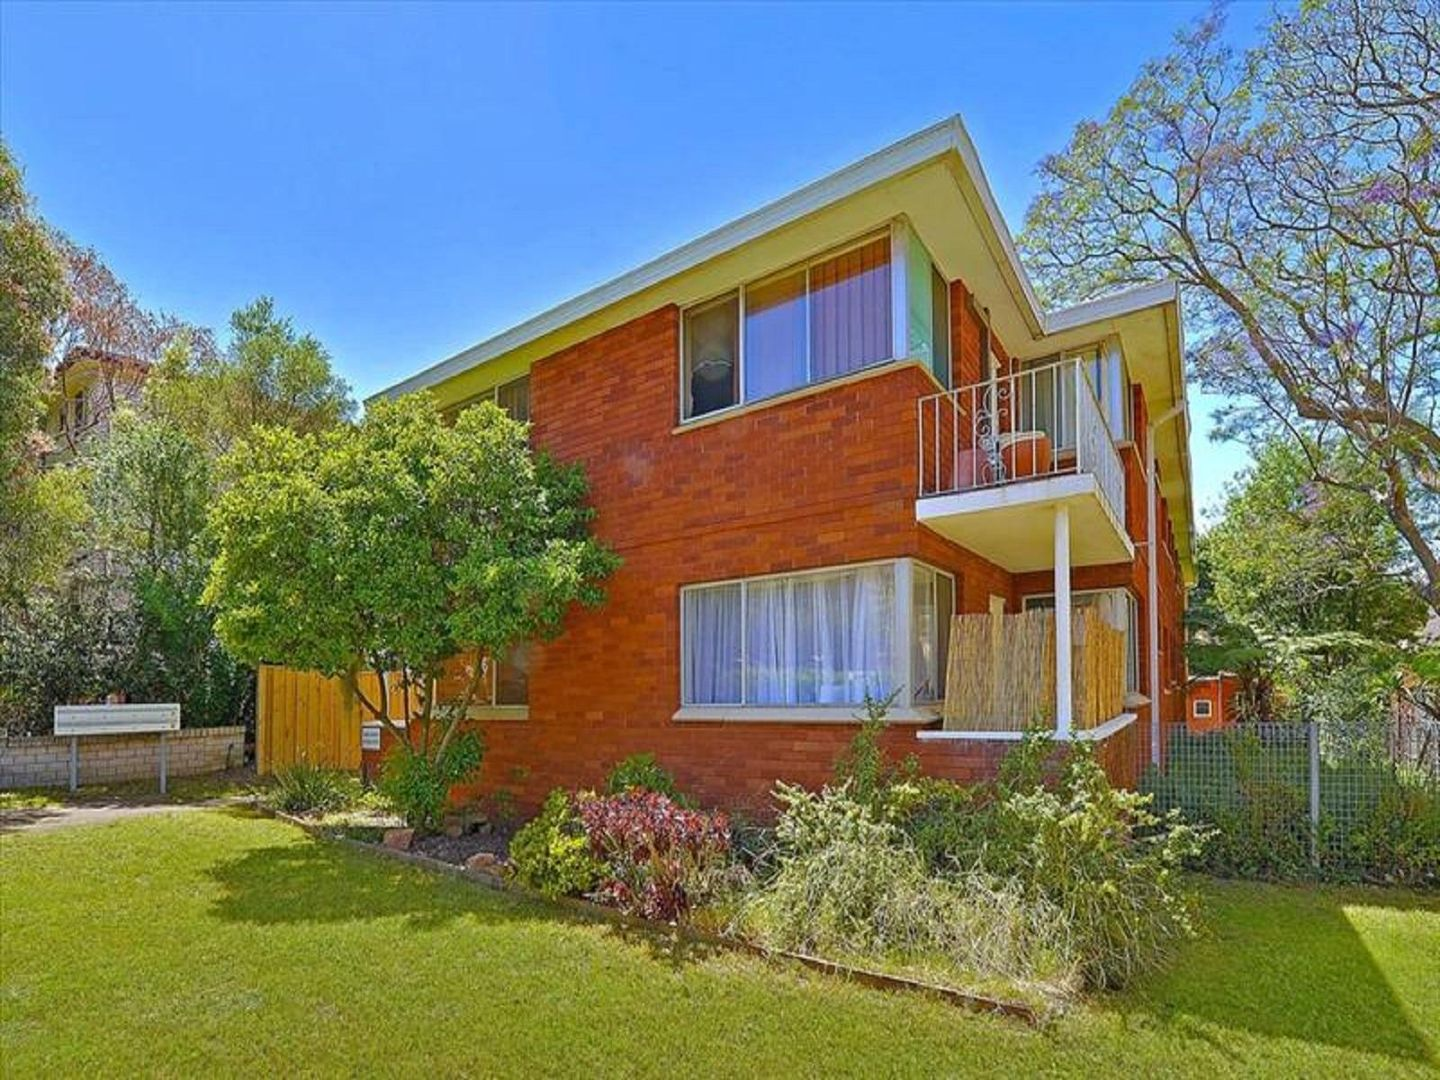 7/74 Hunter Street, Hornsby NSW 2077, Image 0